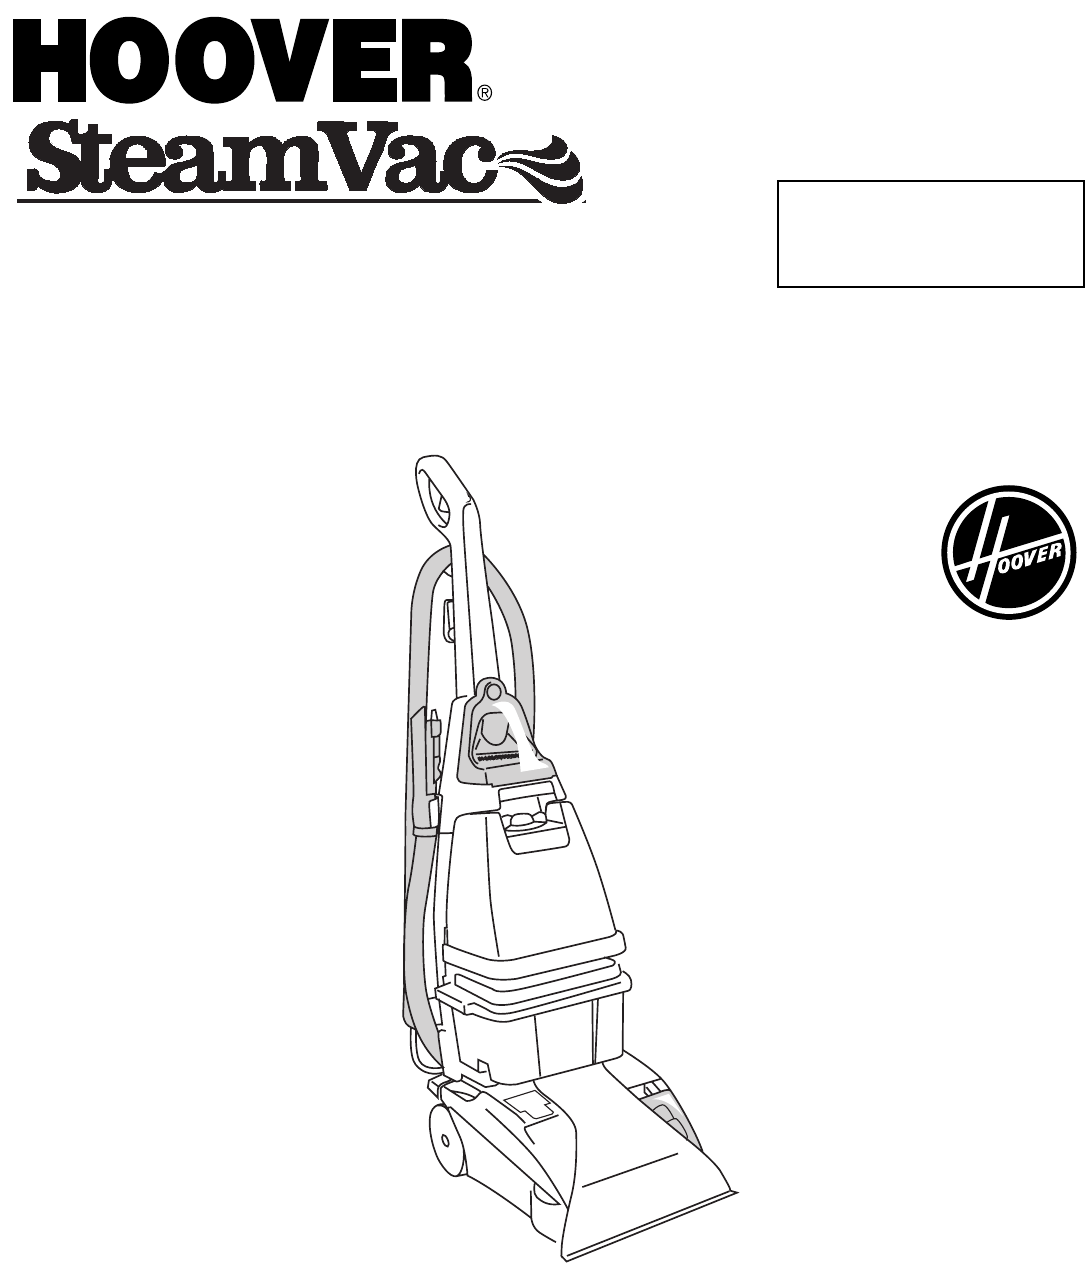 hoover steamvac instructions for use